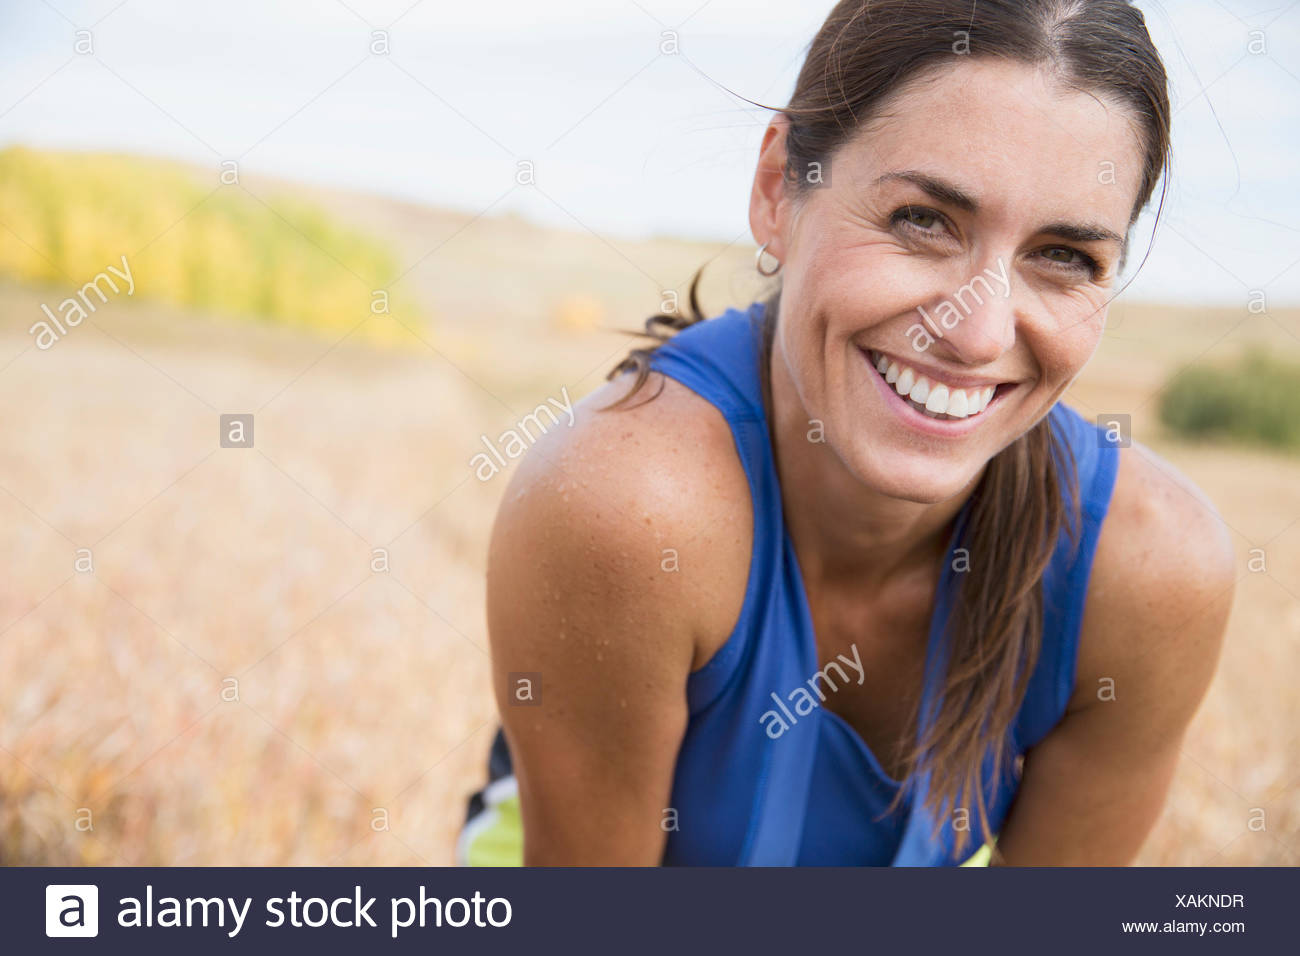 Pretty woman smiling after outdoor run. - Stock Image